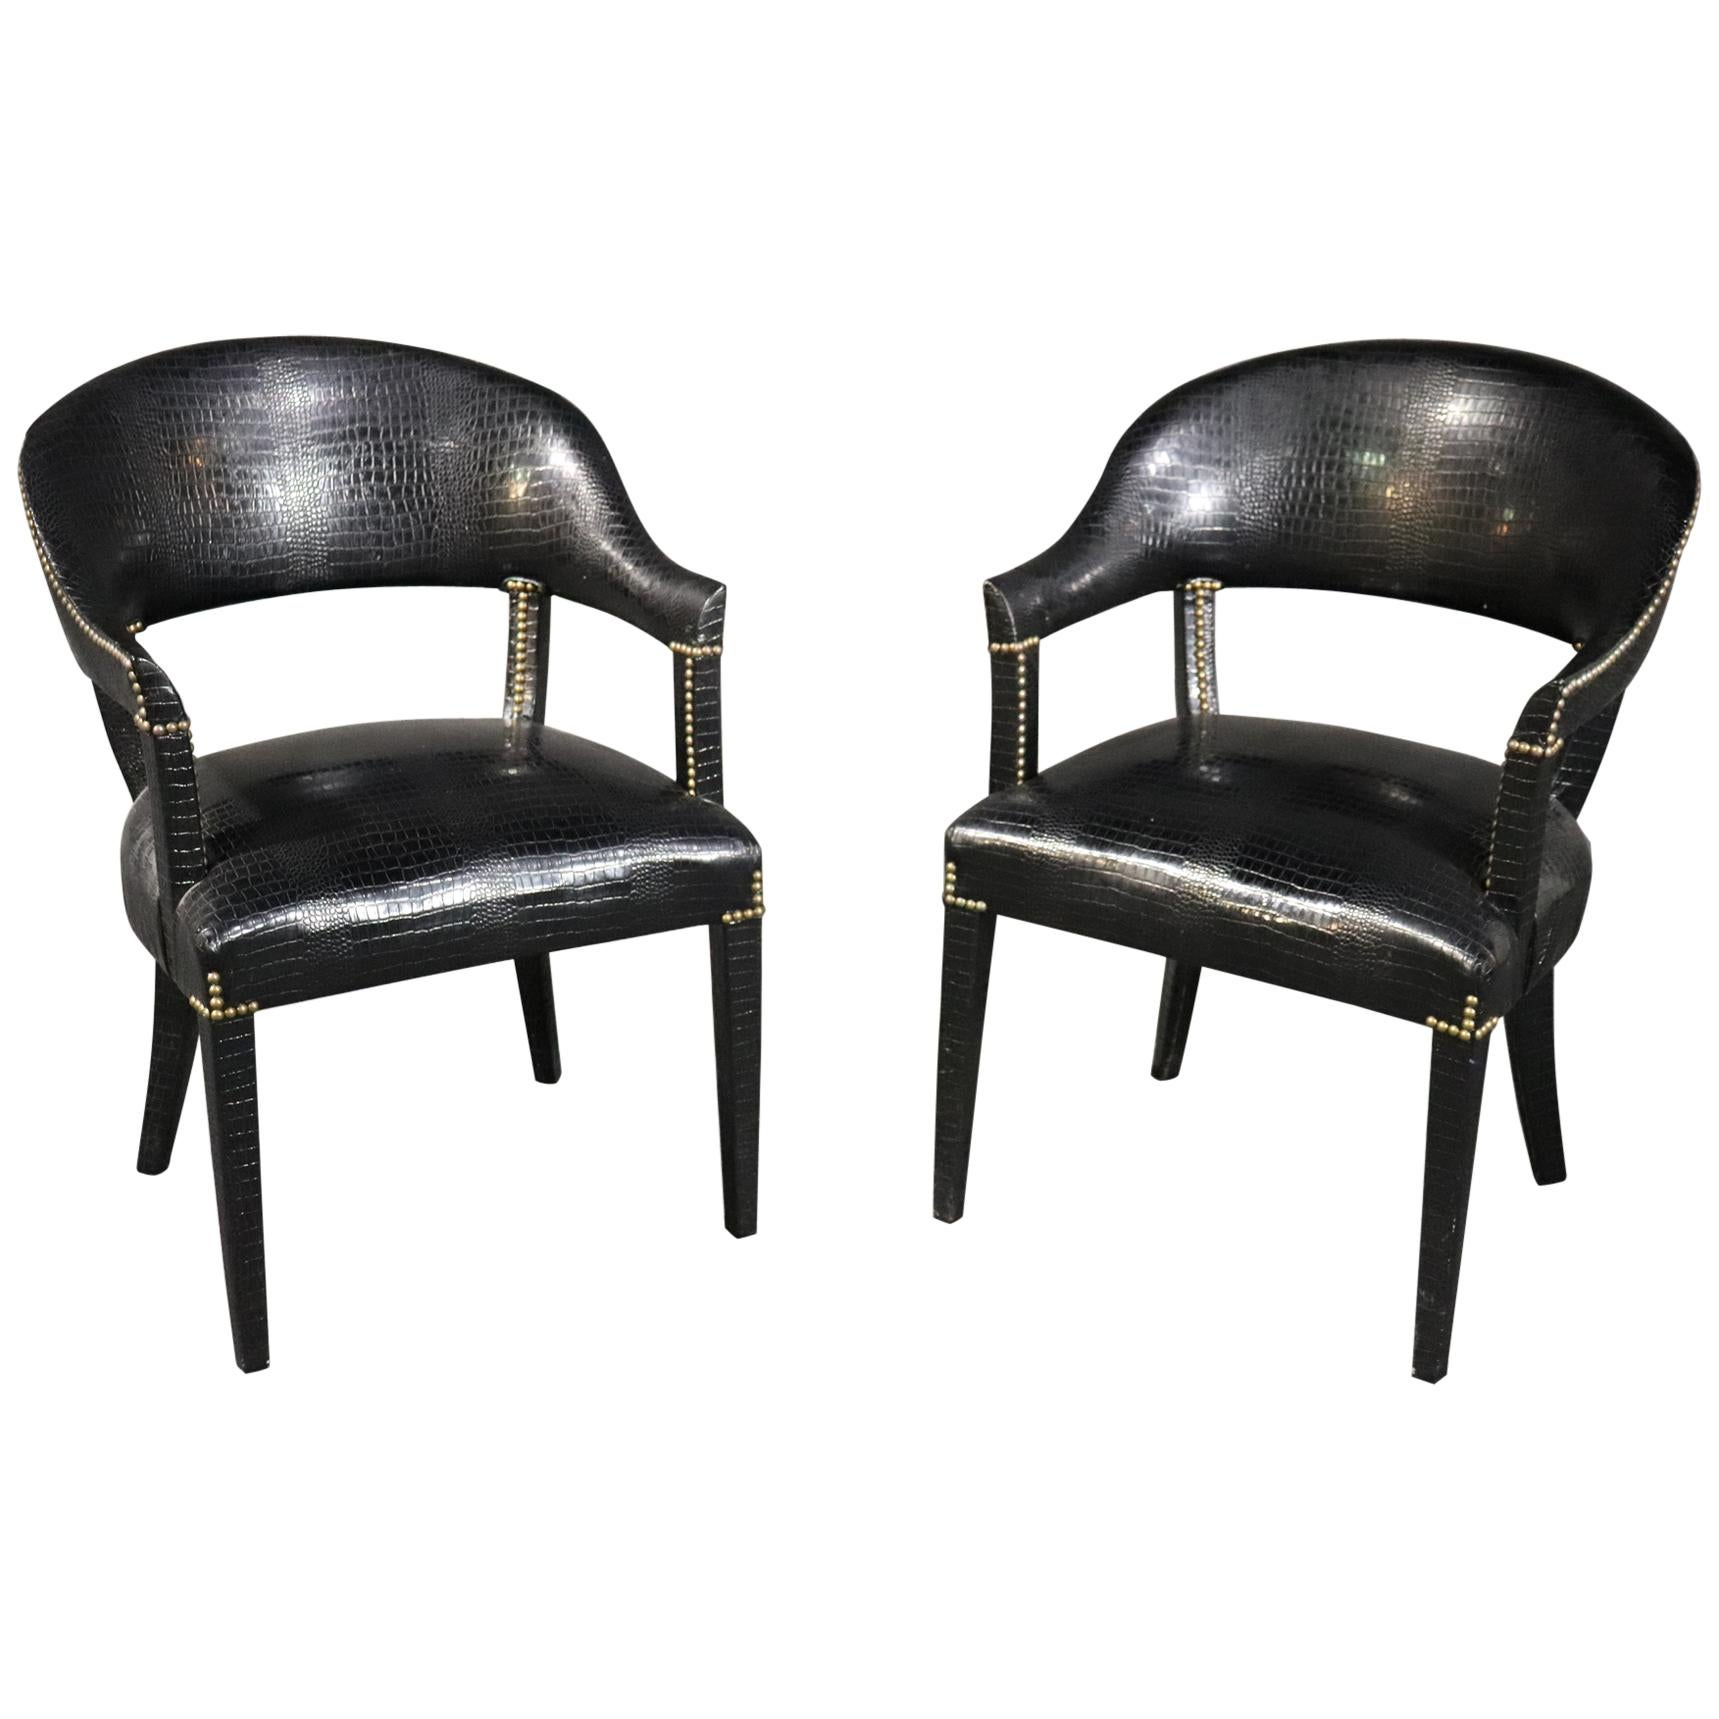 Pair Black Alligator Printed Faux Leather Brass Studded Occasional Office Chairs